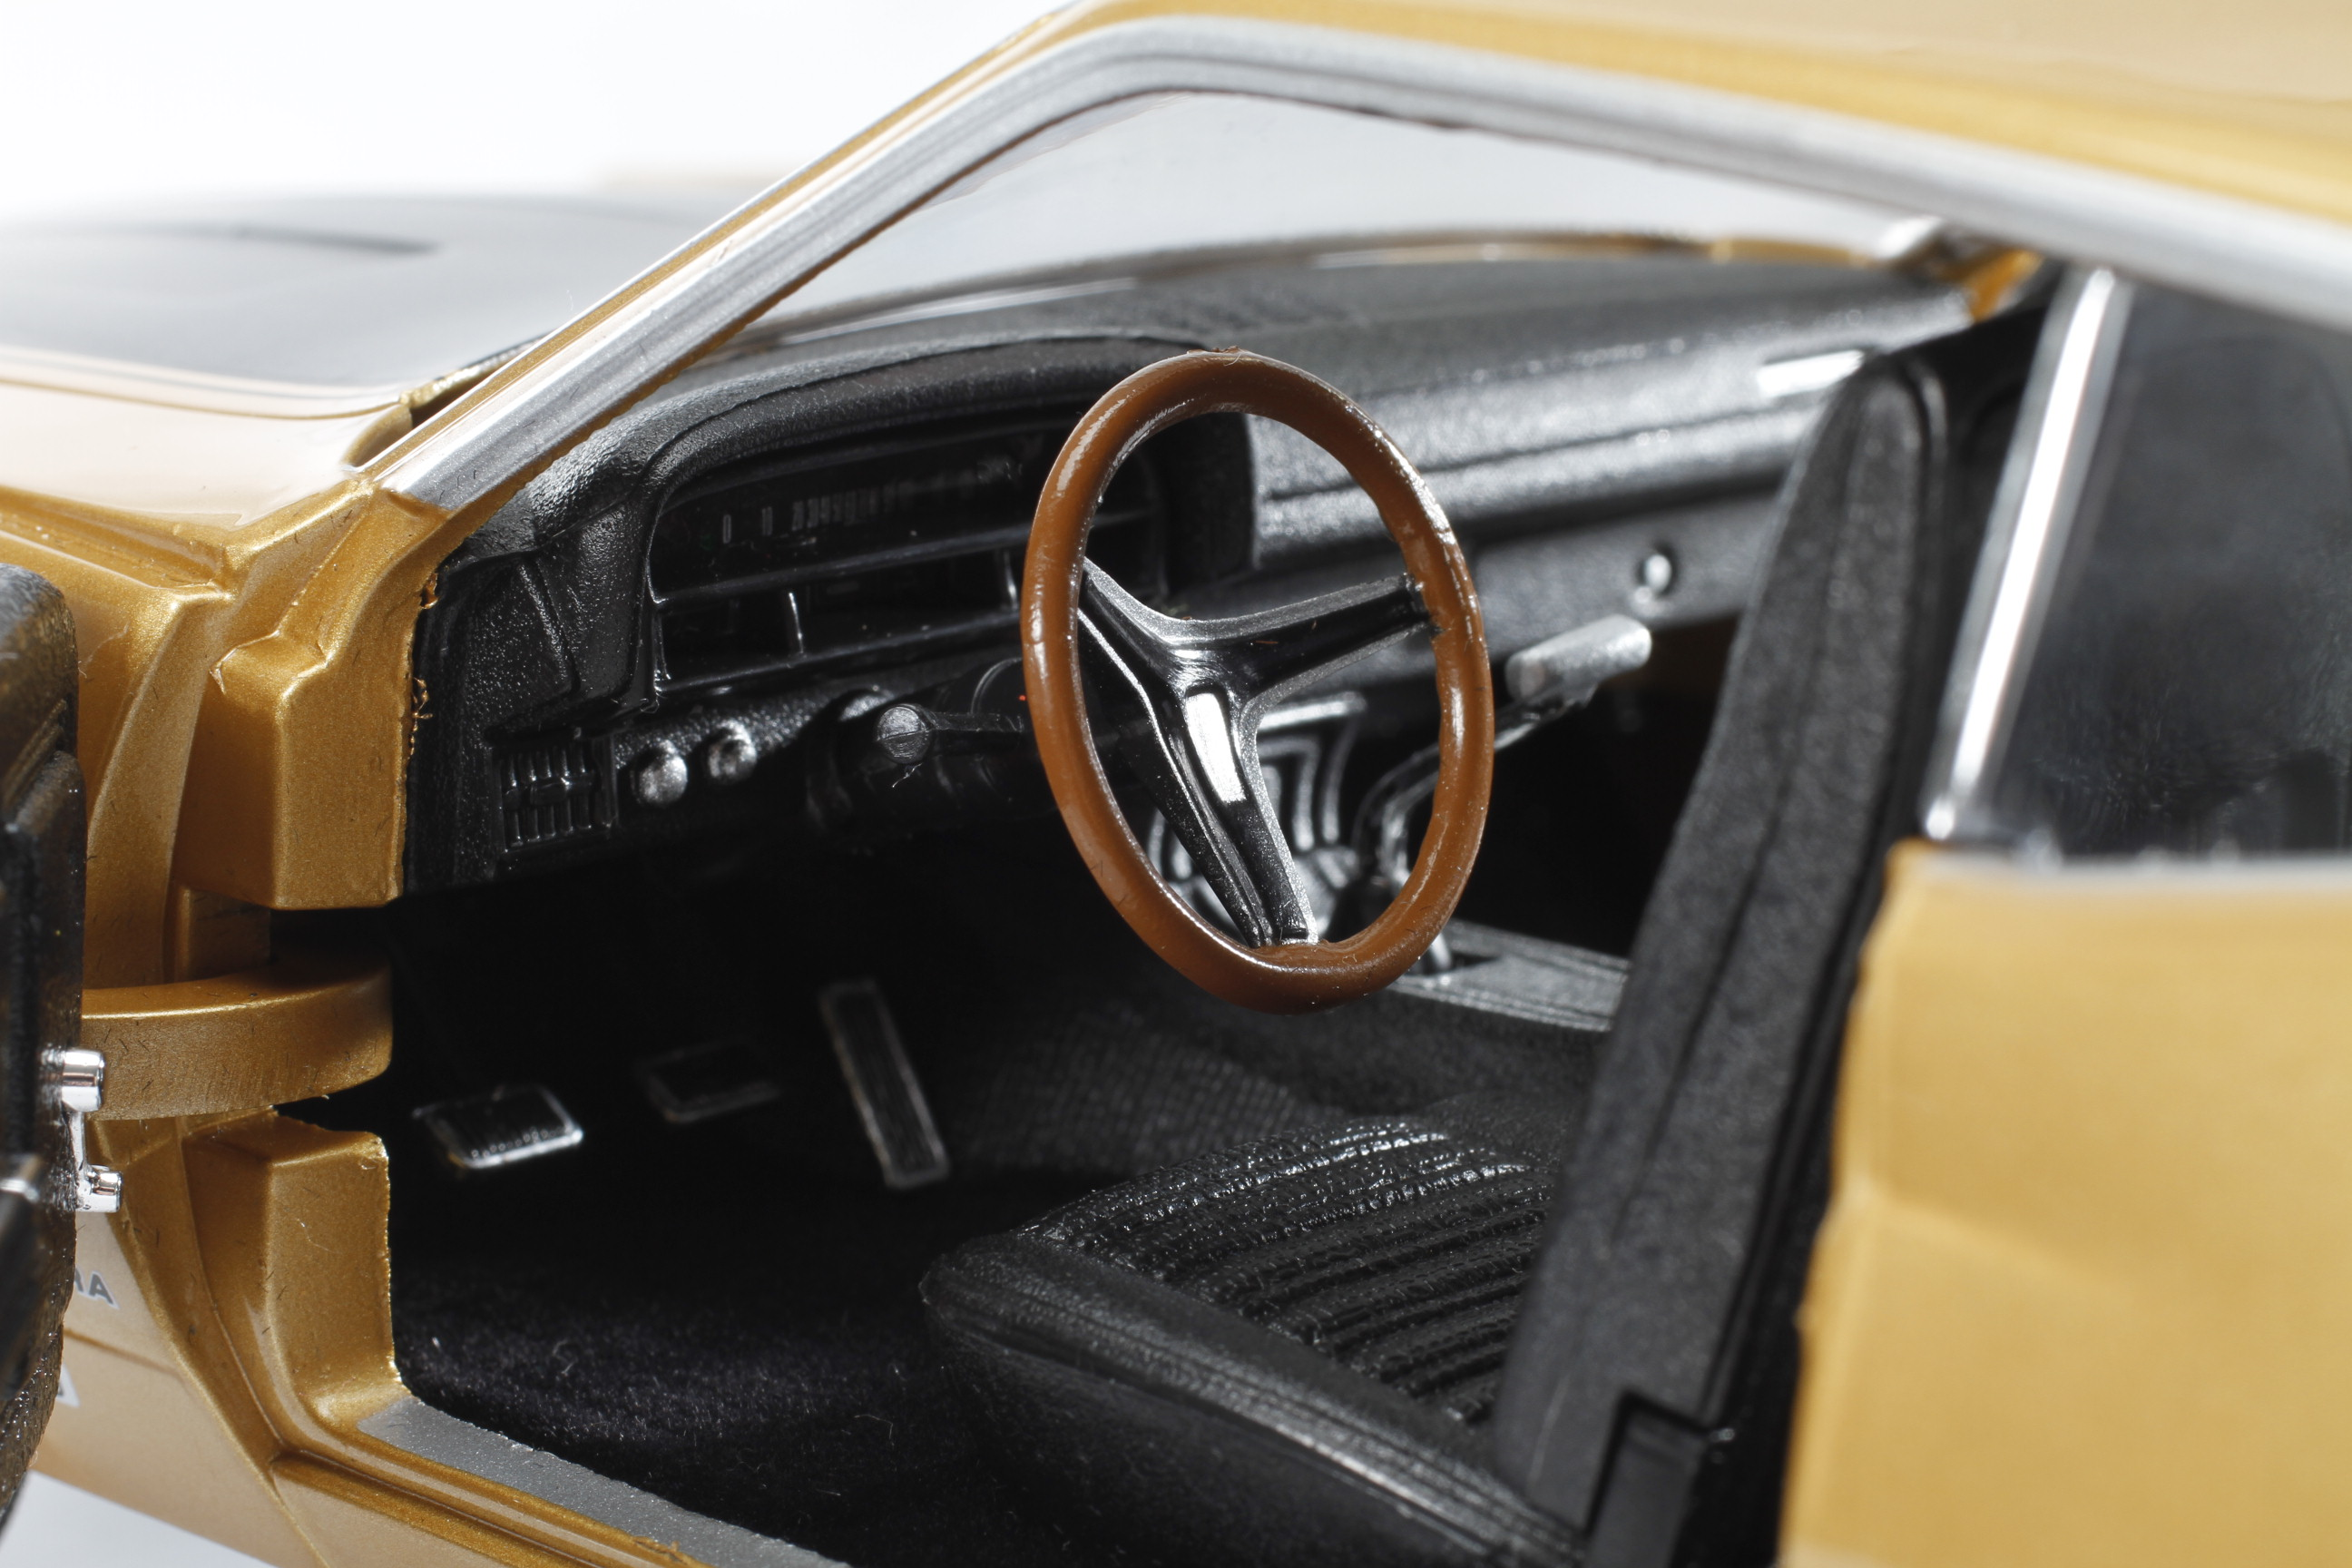 Autoworld 1970 Ford Torino Cobra Fanged Fastback Online Gt The Interior Depicts Fords Black Comfortweave Upholstery Seats Are Hard Plastic With Appropriate Texture And Seat Backs Fold